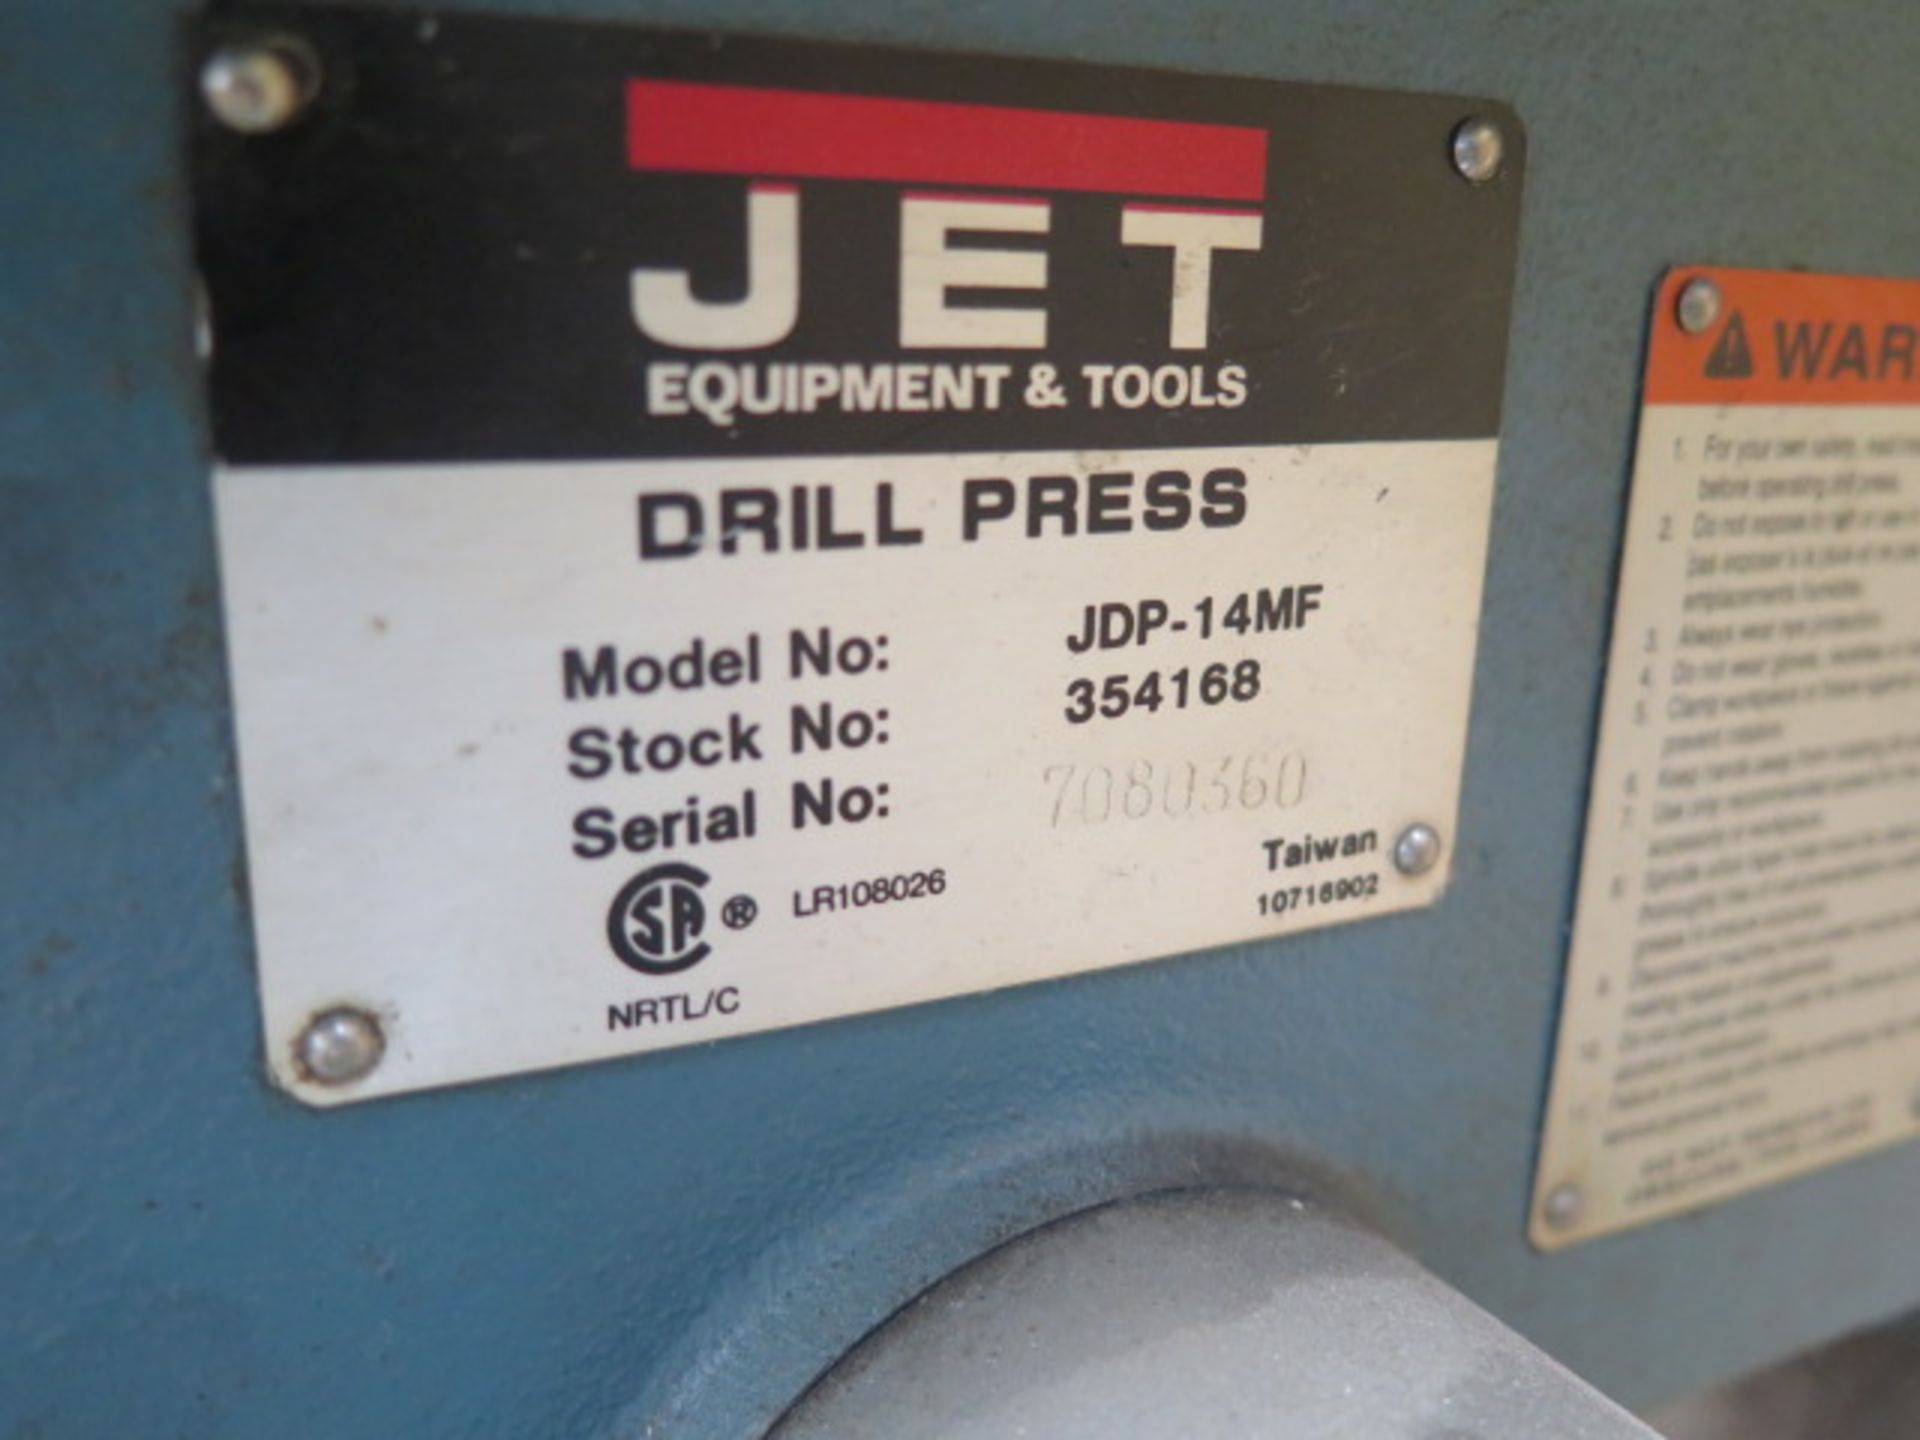 Jet Pedestal Drill Press (SOLD AS-IS - NO WARRANTY) - Image 7 of 7